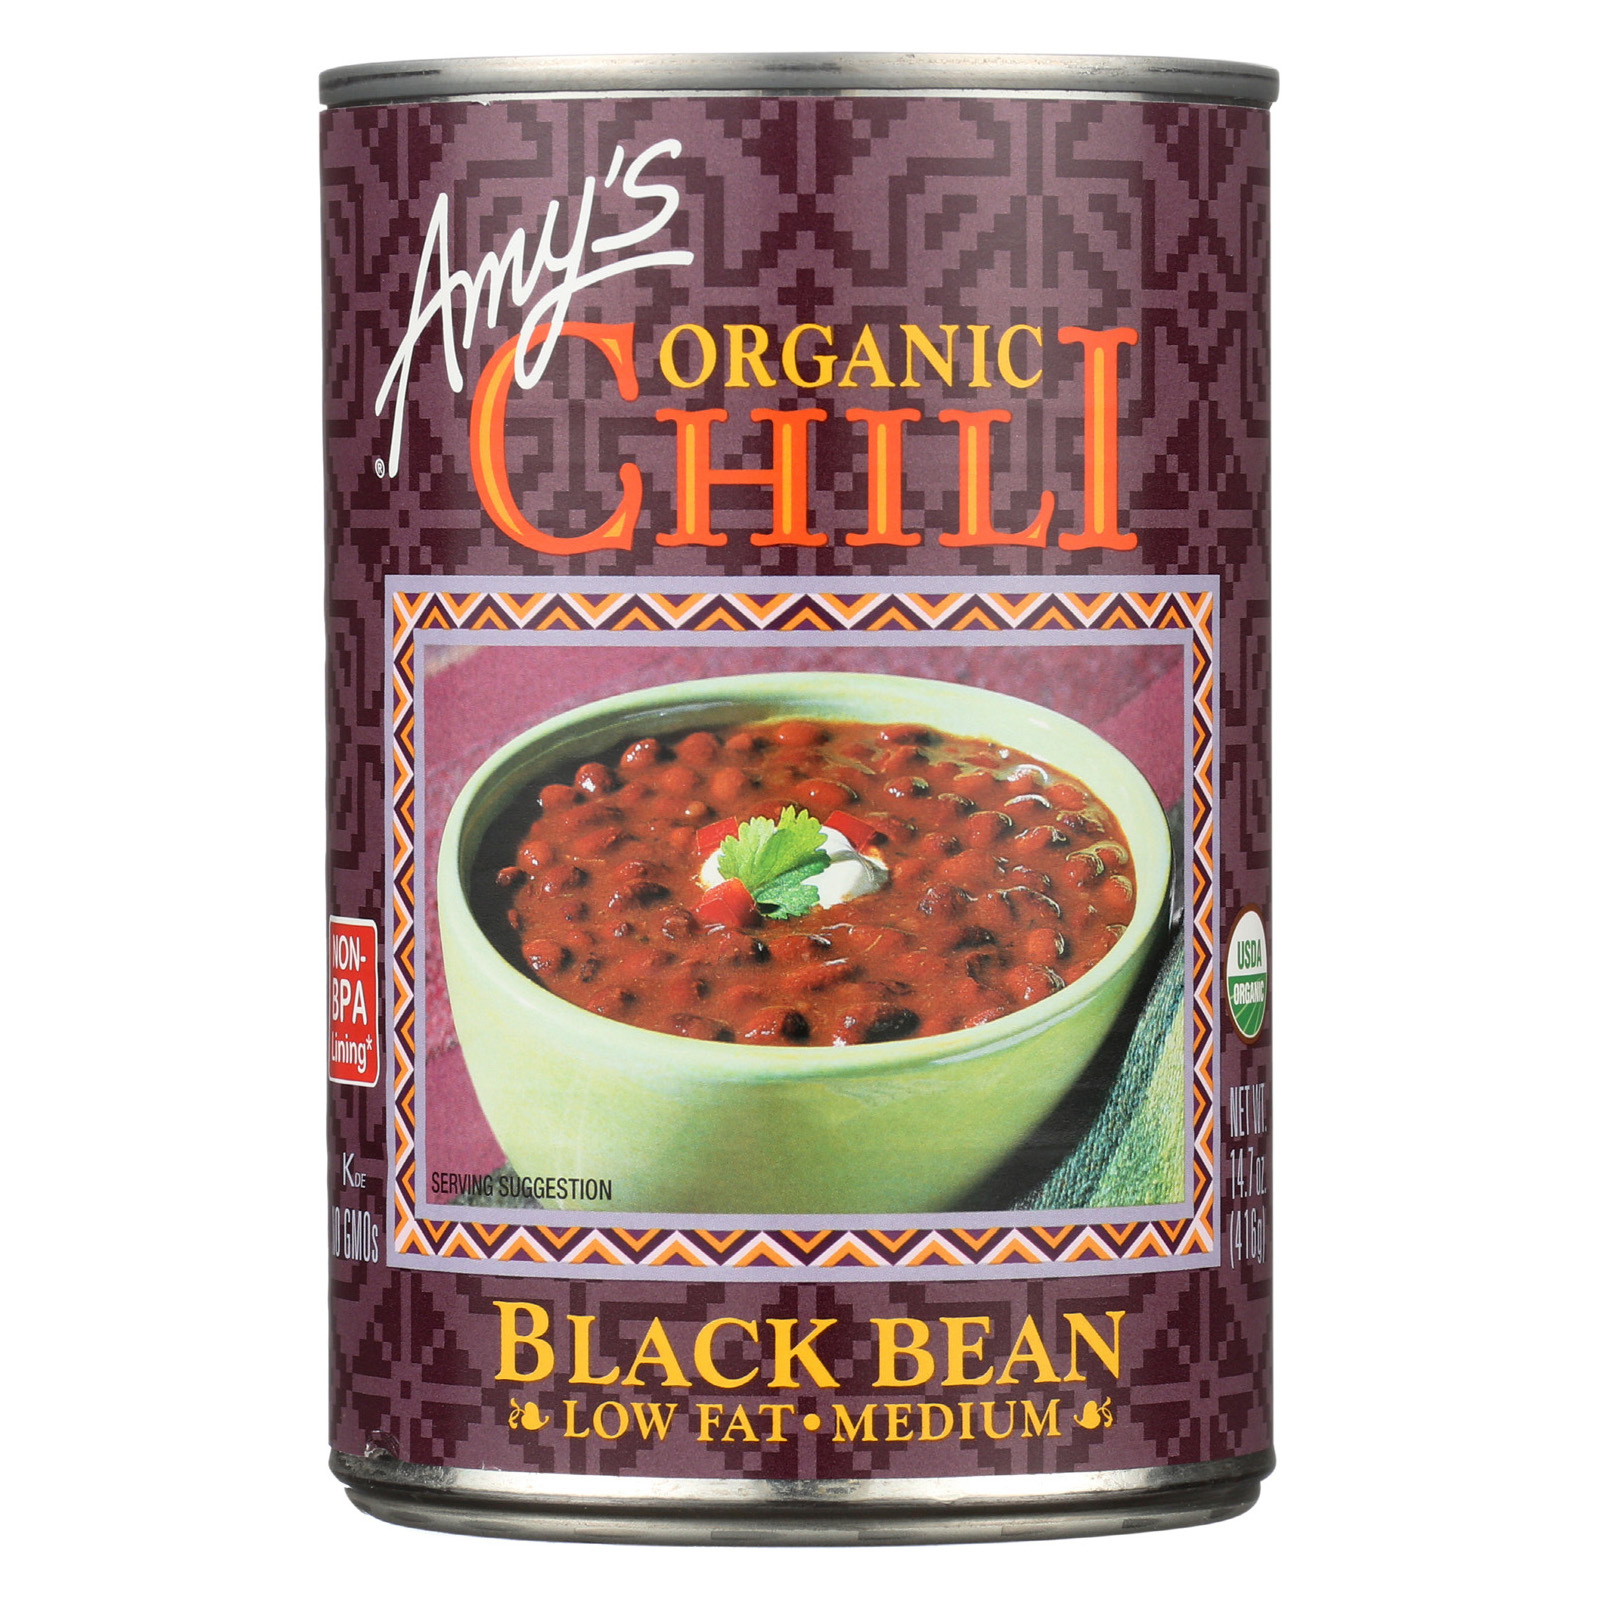 Amy's Organic Medium Black Bean Chili - Case of 12 - 14.7 oz